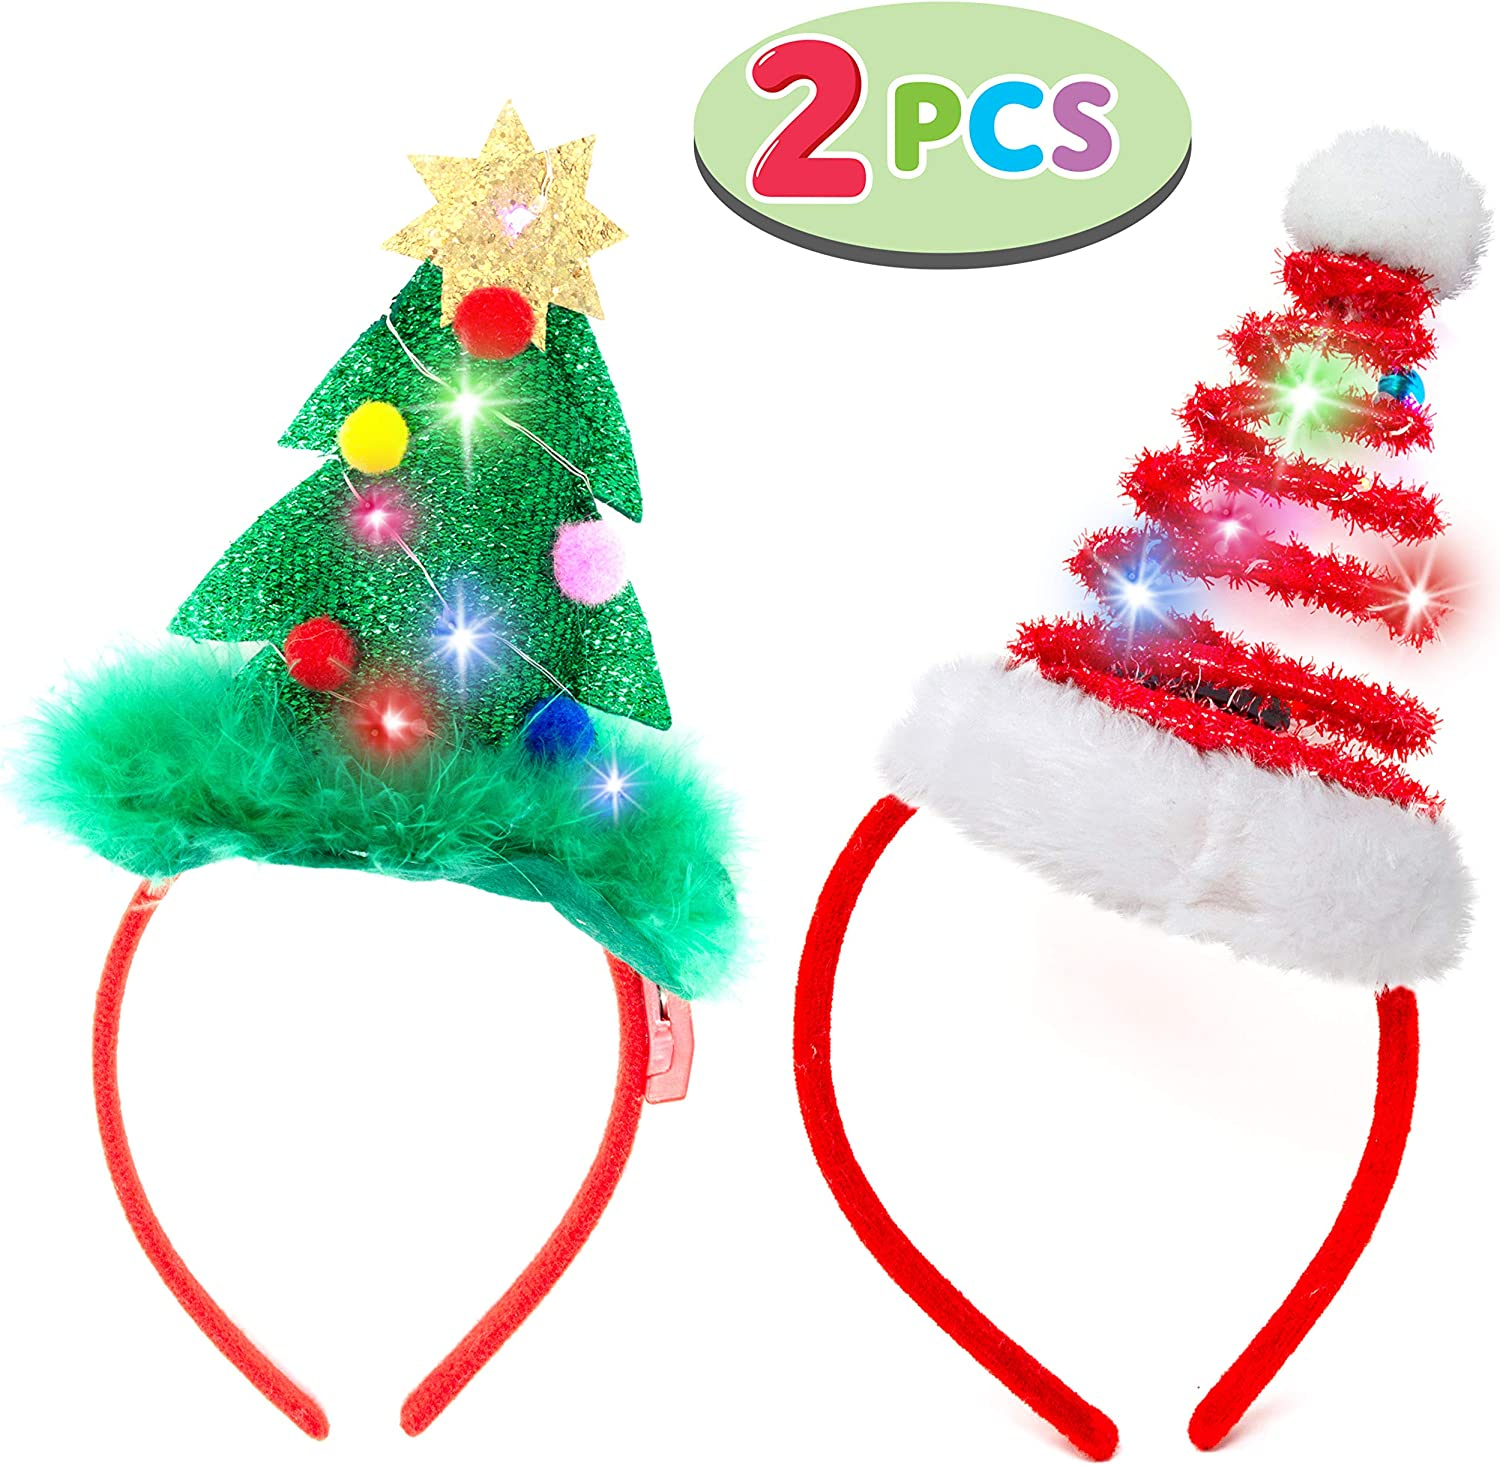 Headband For Women LED Light Up Christmas Reindeer Headwear For Holiday Party